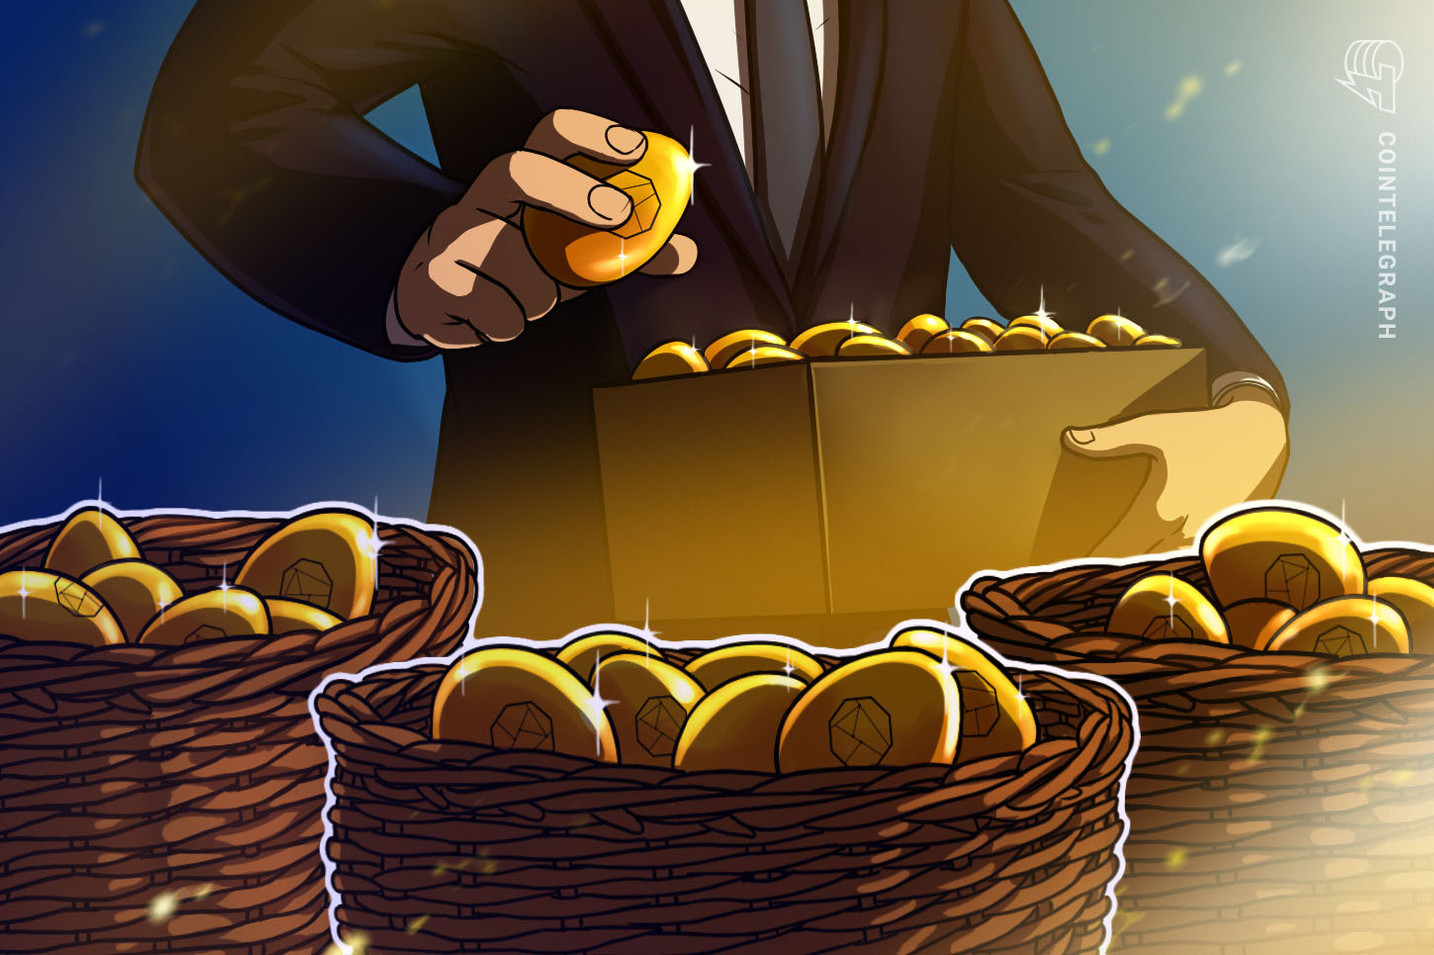 Altcoin Roundup: Post-crash prices give investors a chance to build a diversified portfolio